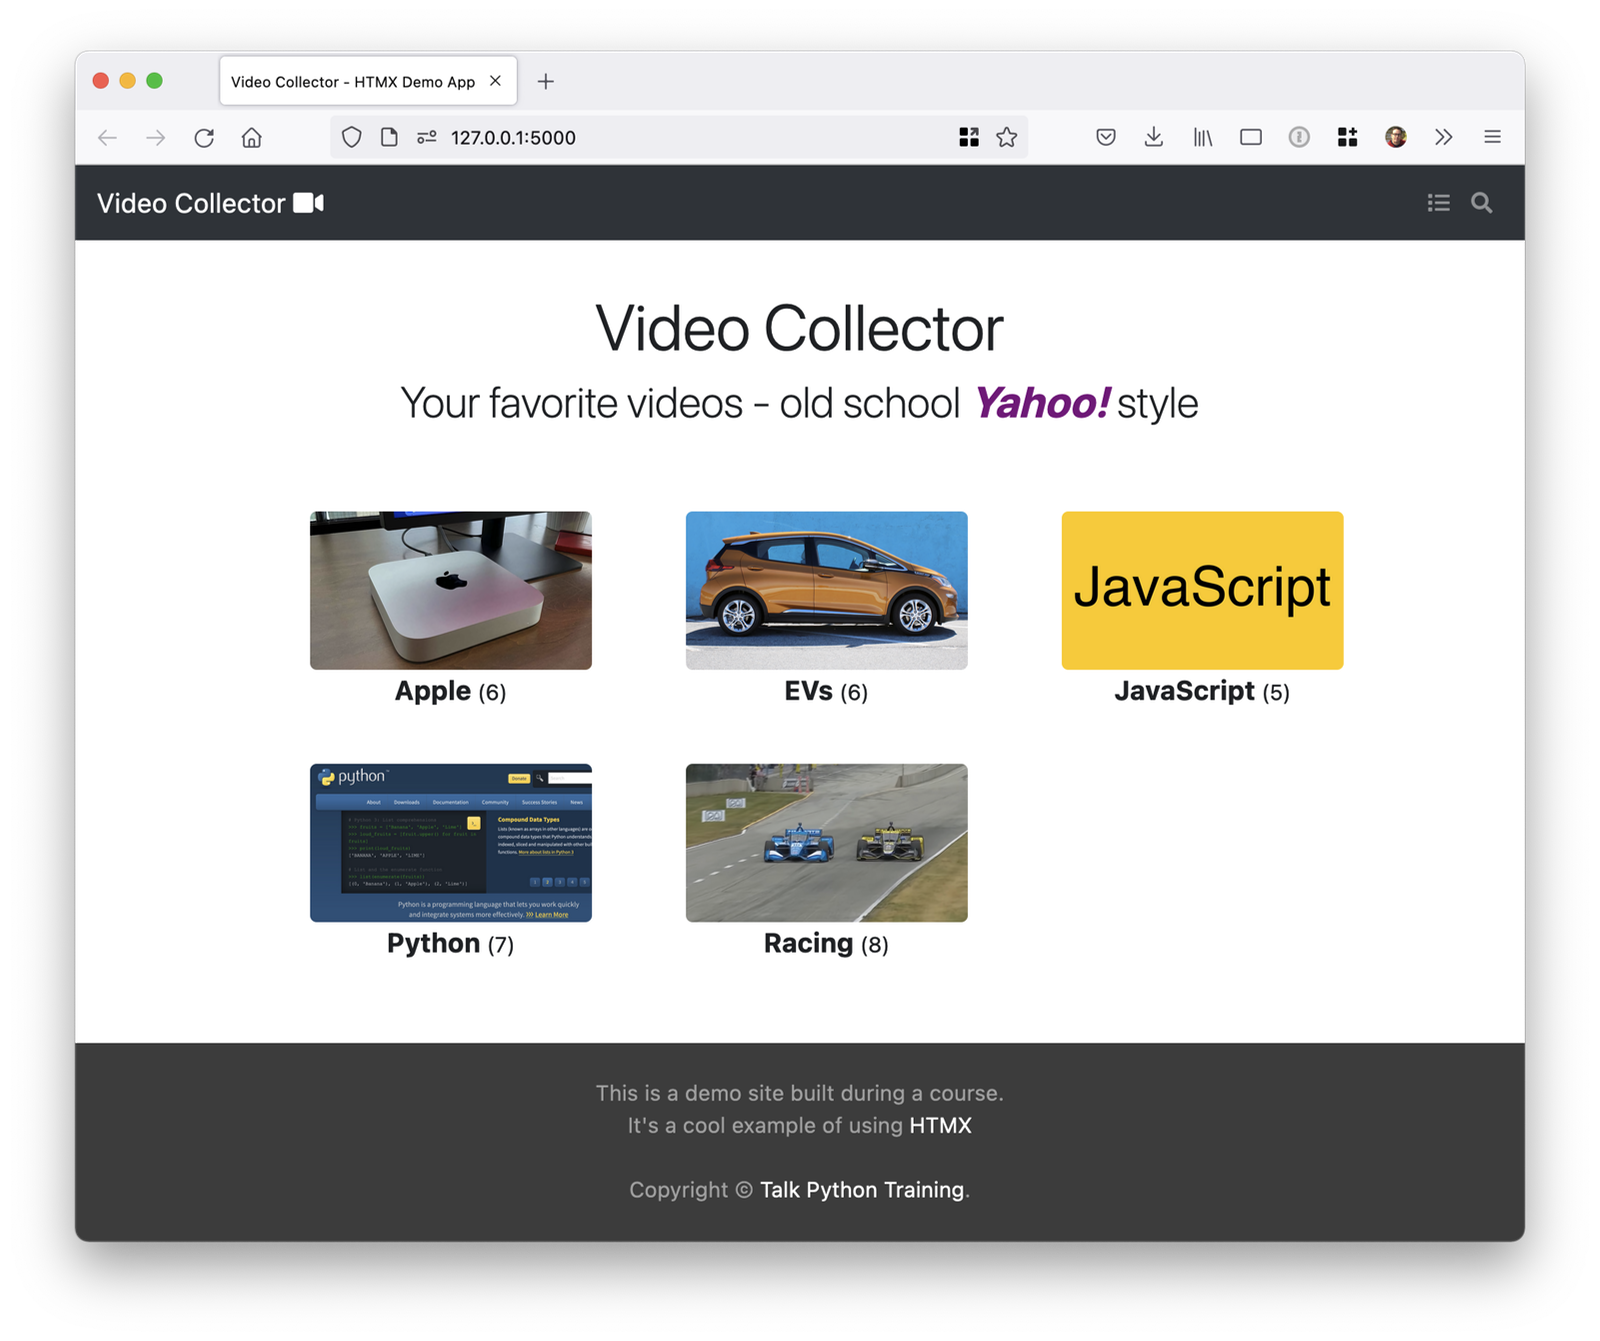 htmx-video-collector-home-shadow-1600.png